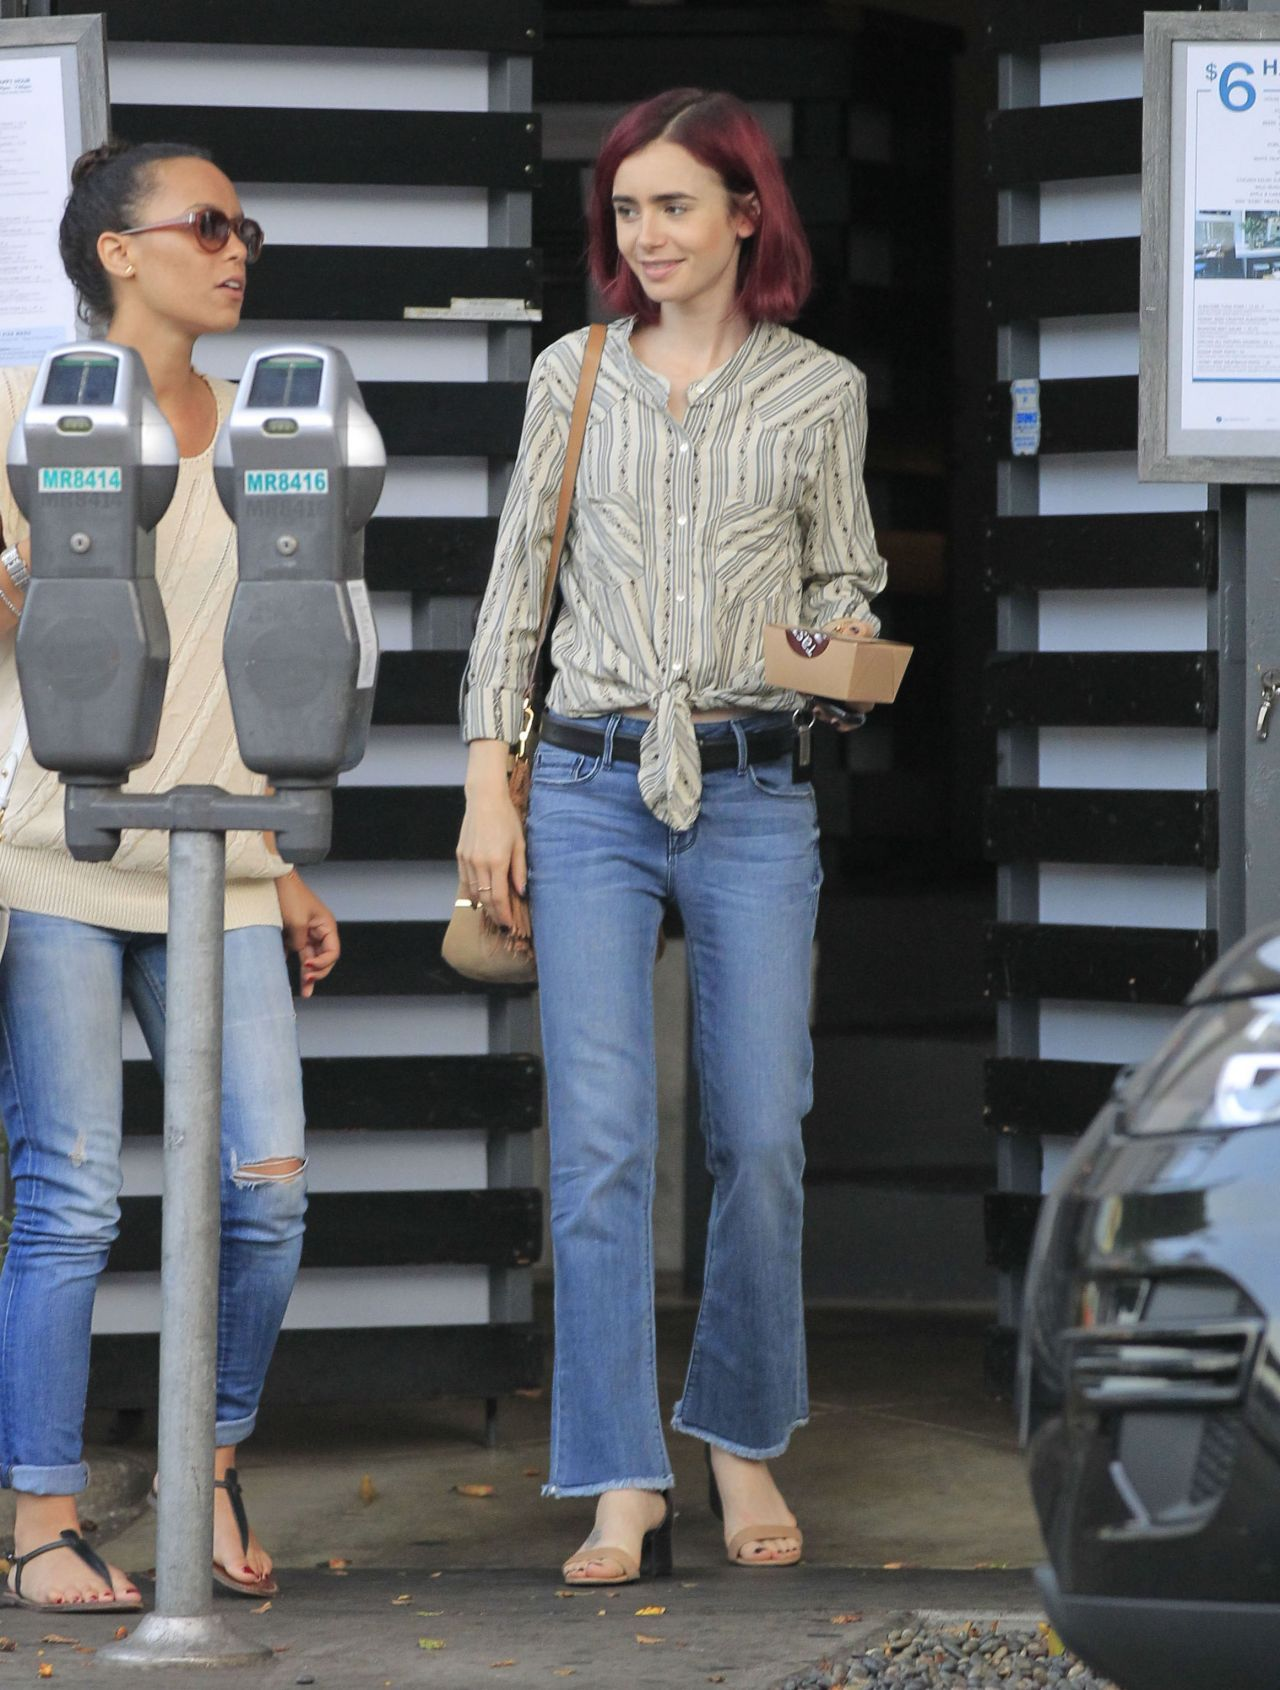 lily-collins-out-for-lunch-in-los-angeles-8-9-2016-2.jpg (1280×1690)